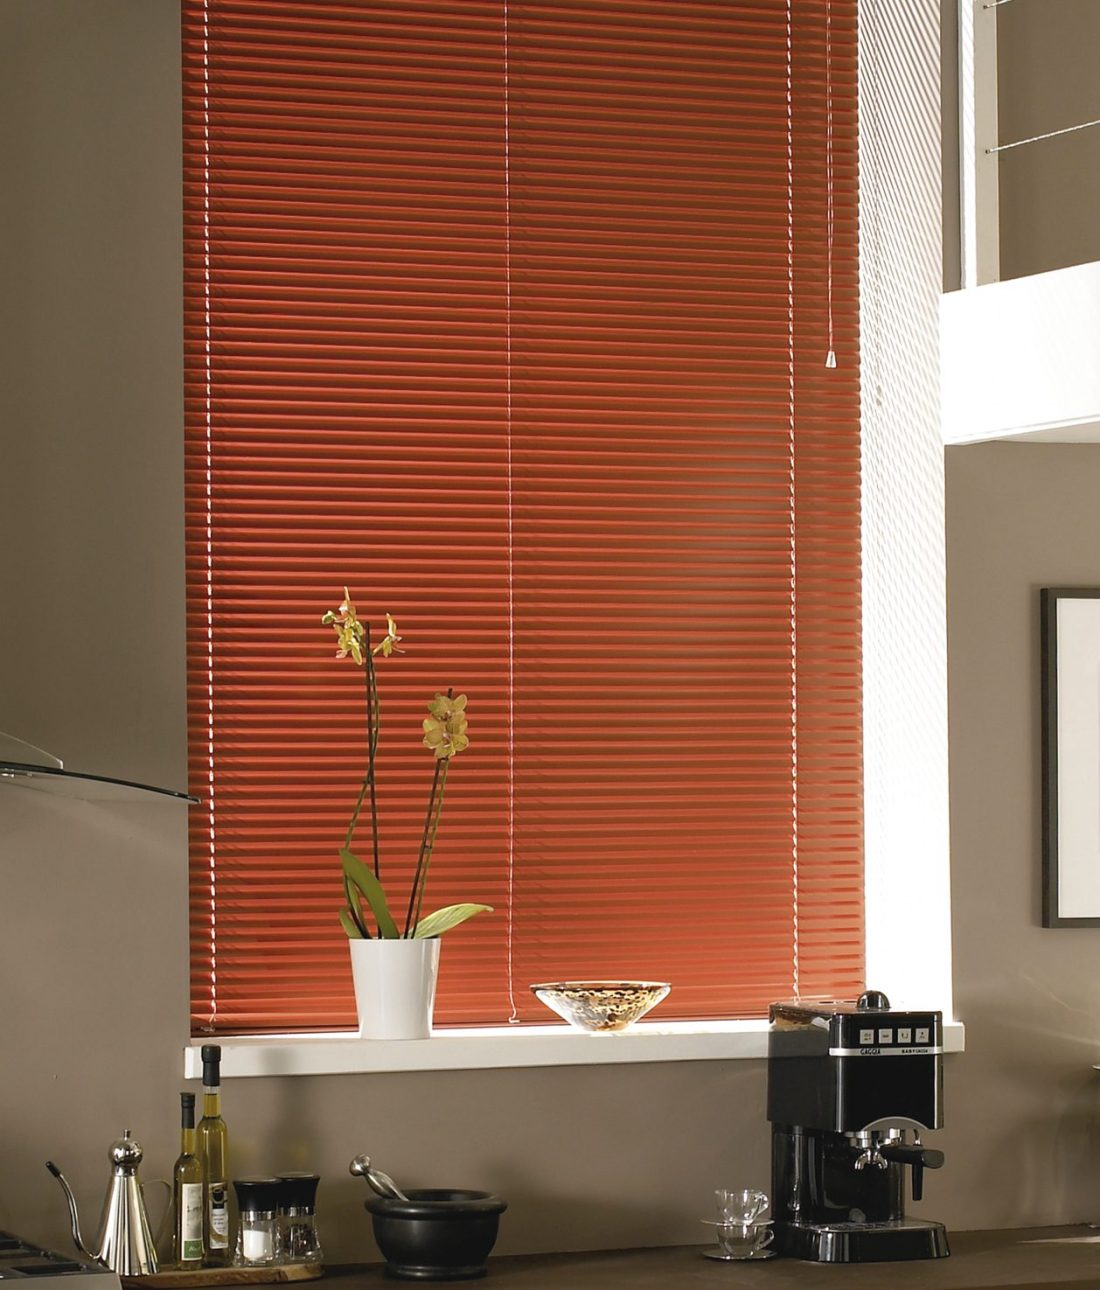 mice products us coverings blinds window blind vertical